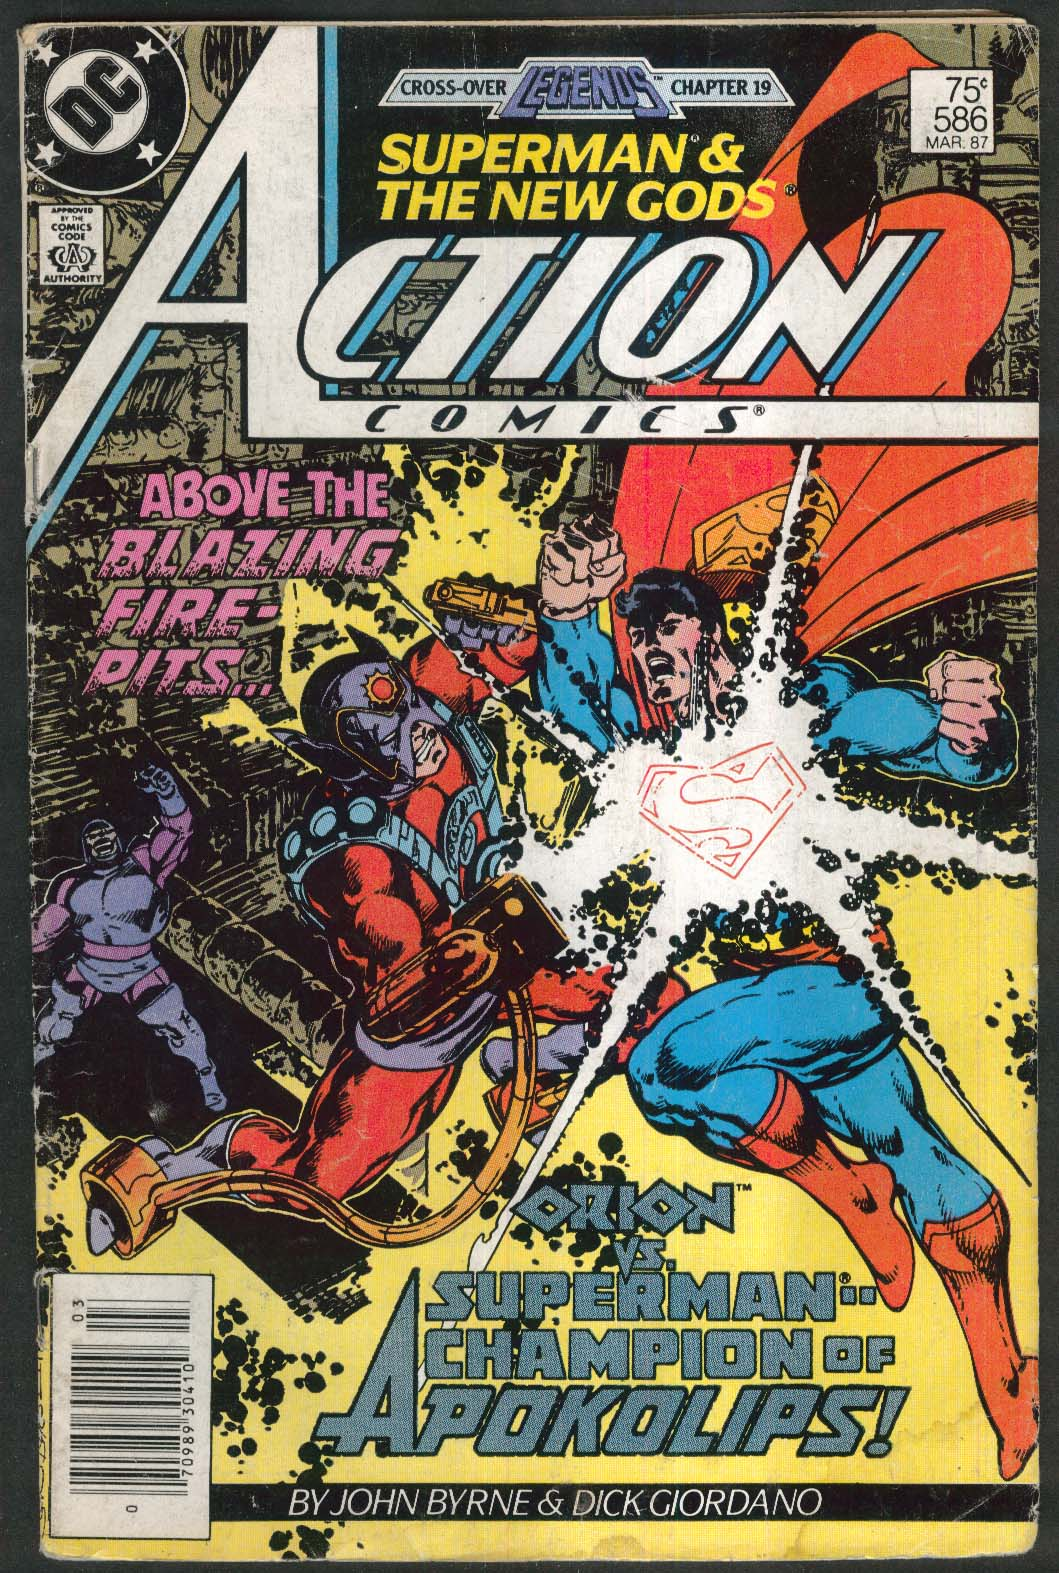 ACTION COMICS #586 DC comic book 3 1987 Superman